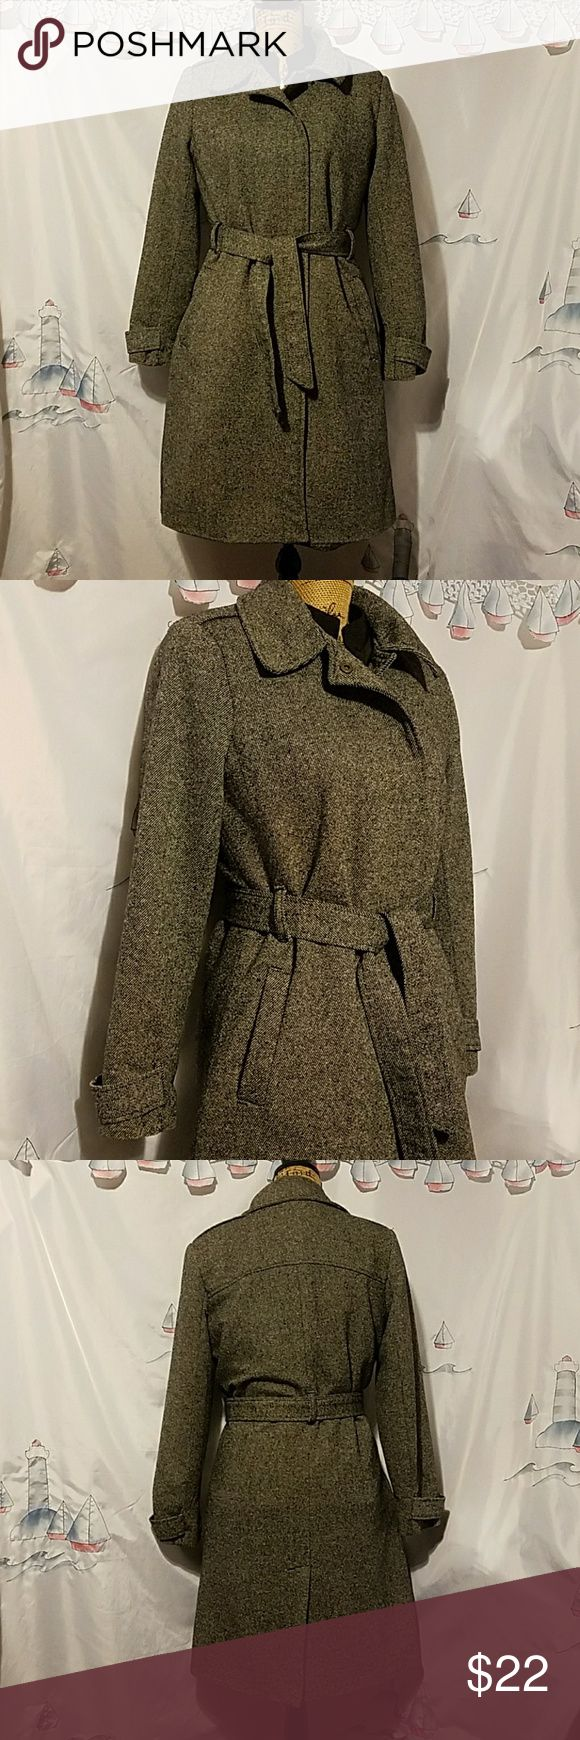 """Old navy pea coat. Old navy pea coat.Size large.Shoulder to bottom 38"""" long.,breast laying flat 19"""".Color gray and black.used and  good condition. Old Navy Jackets & Coats Pea Coats"""